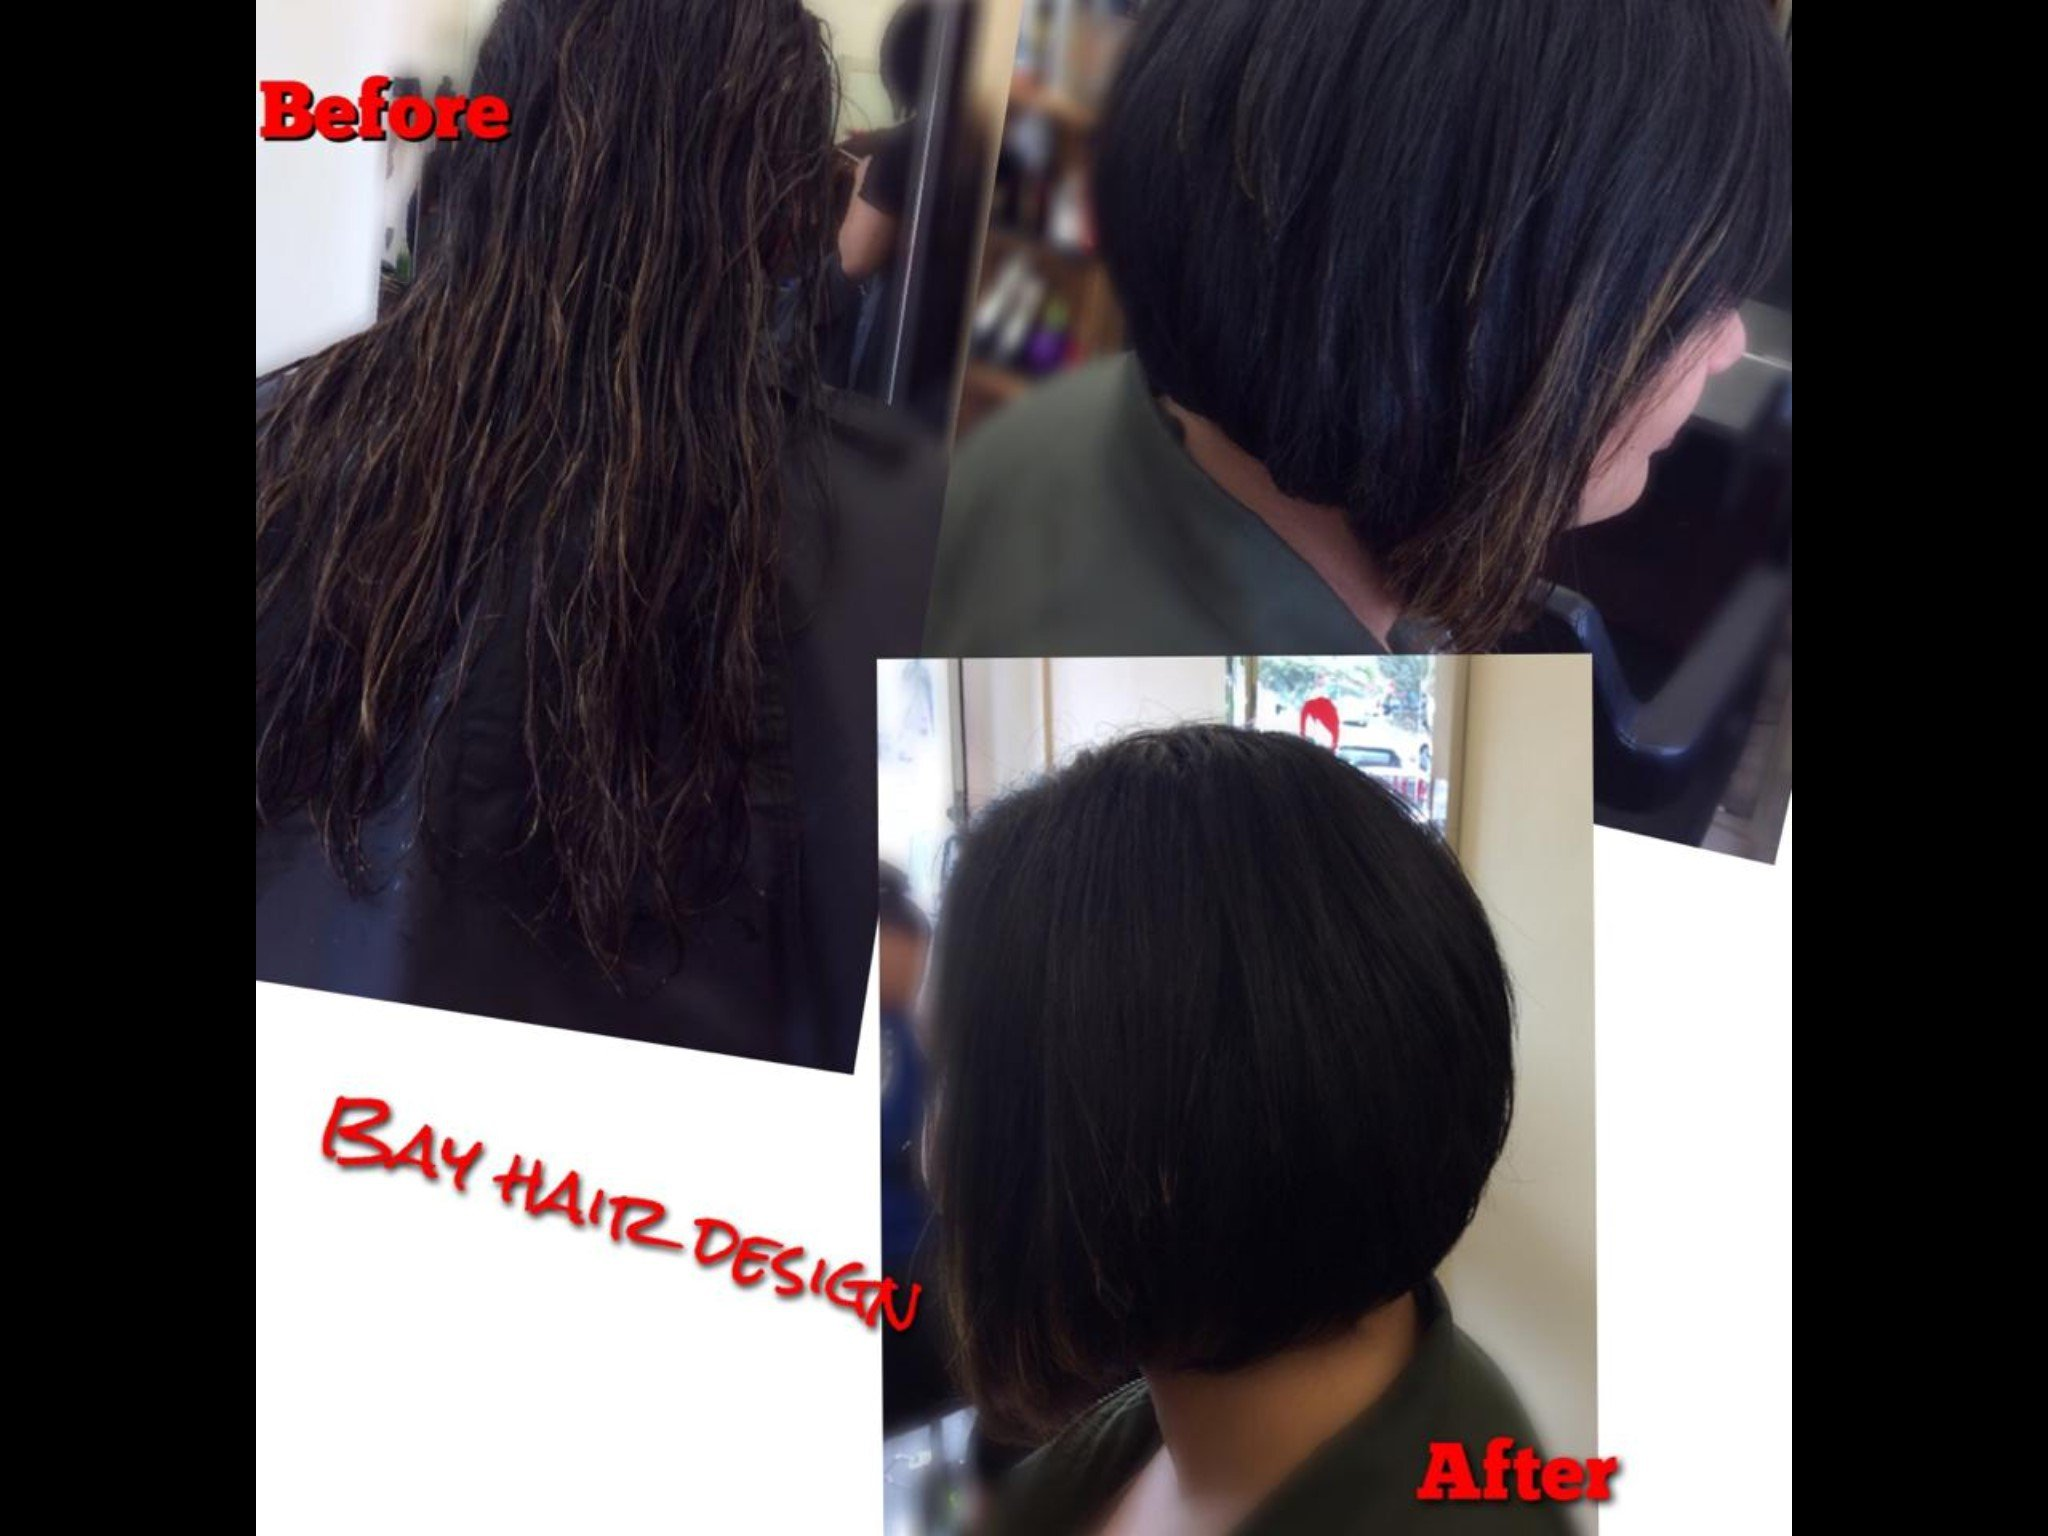 This outstanding restyle was done by our senior stylist Sonya Martin